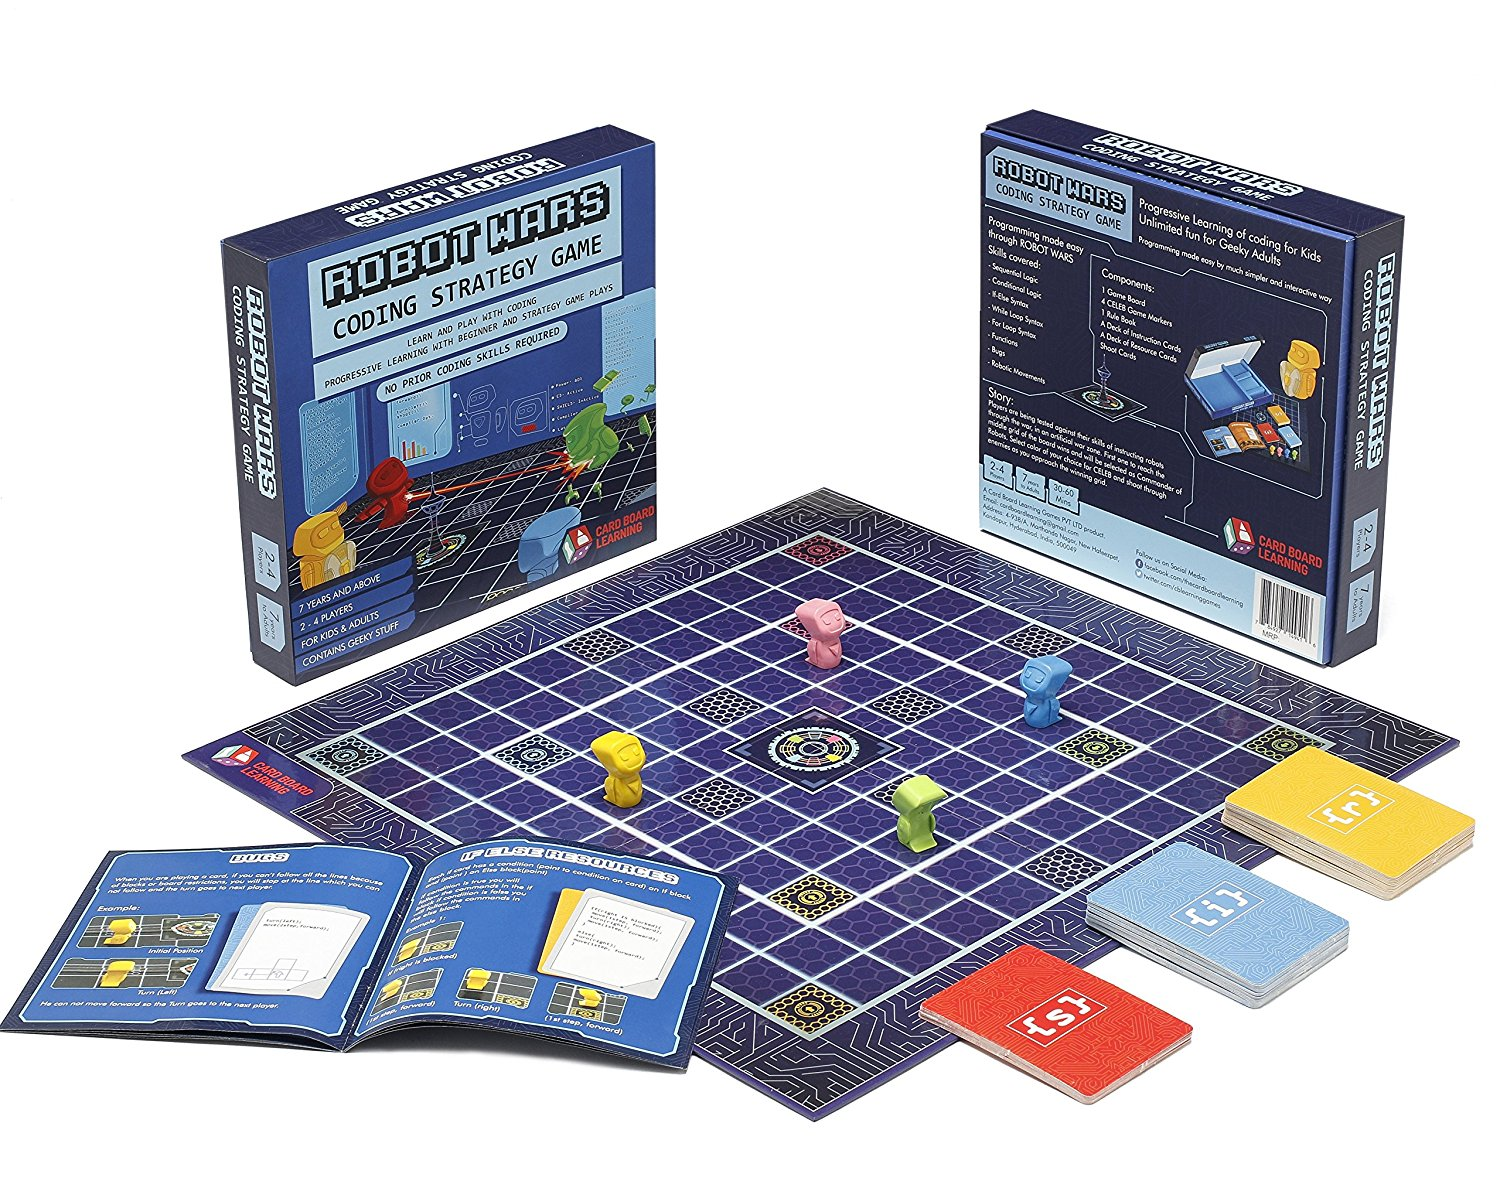 Dad of Divas' Reviews: Game Review - ROBOT WARS Coding Board